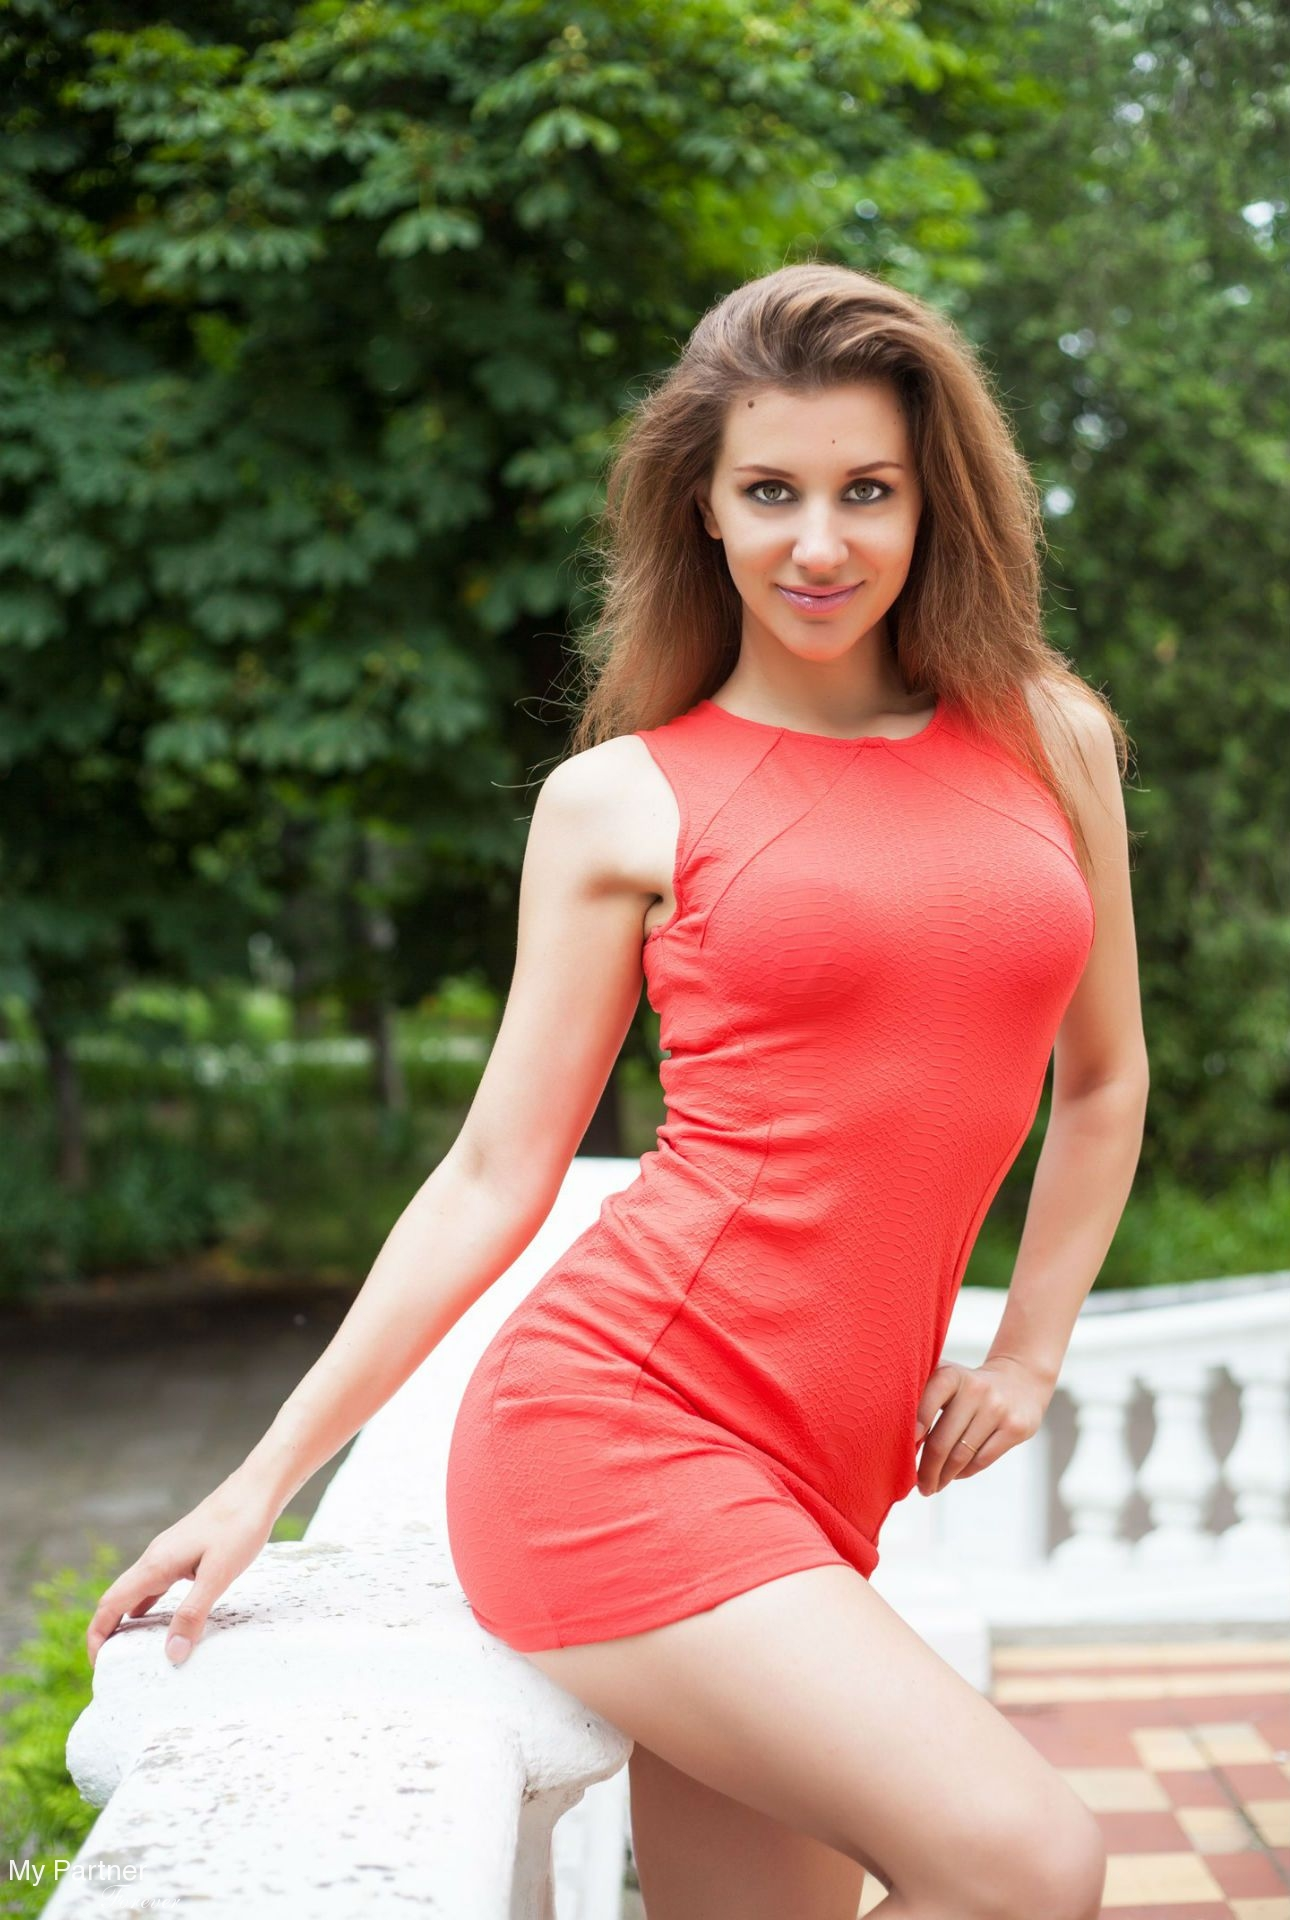 photo: ukrainian women dating meet